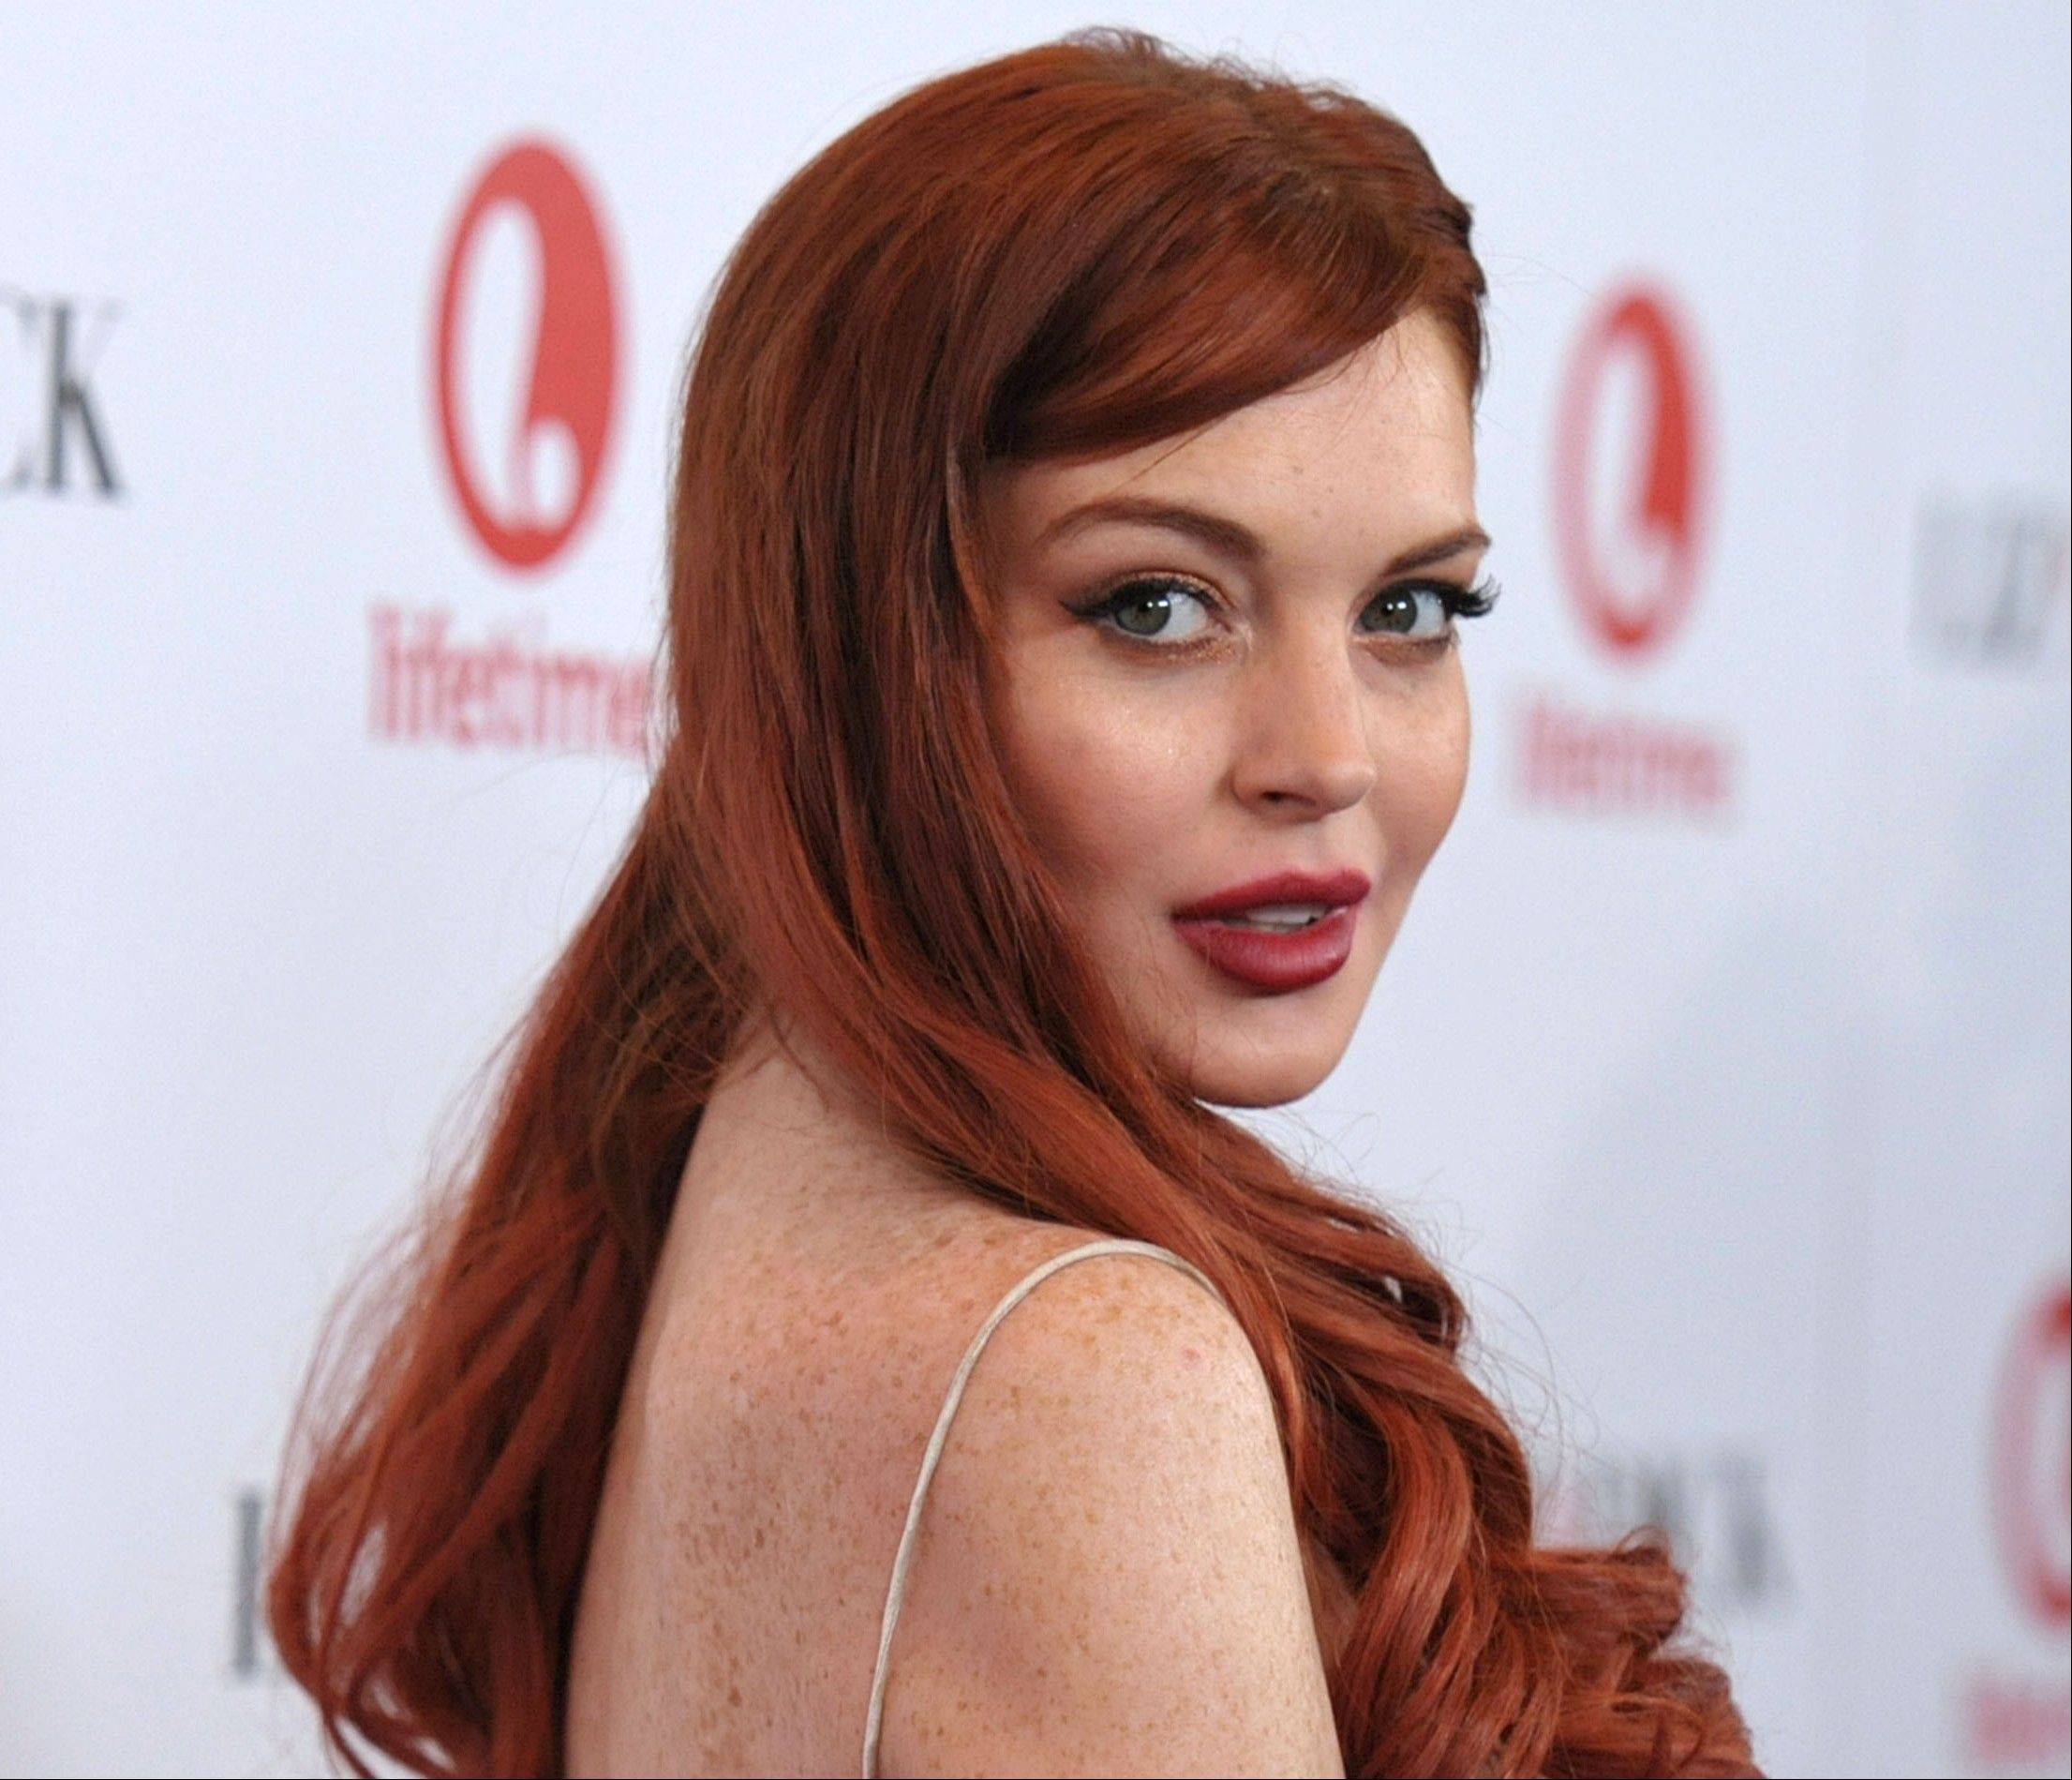 Lindsay Lohan was arrested and charged with third-degree assault early Thursday after police say she hit a woman during an argument at a New York City nightclub.